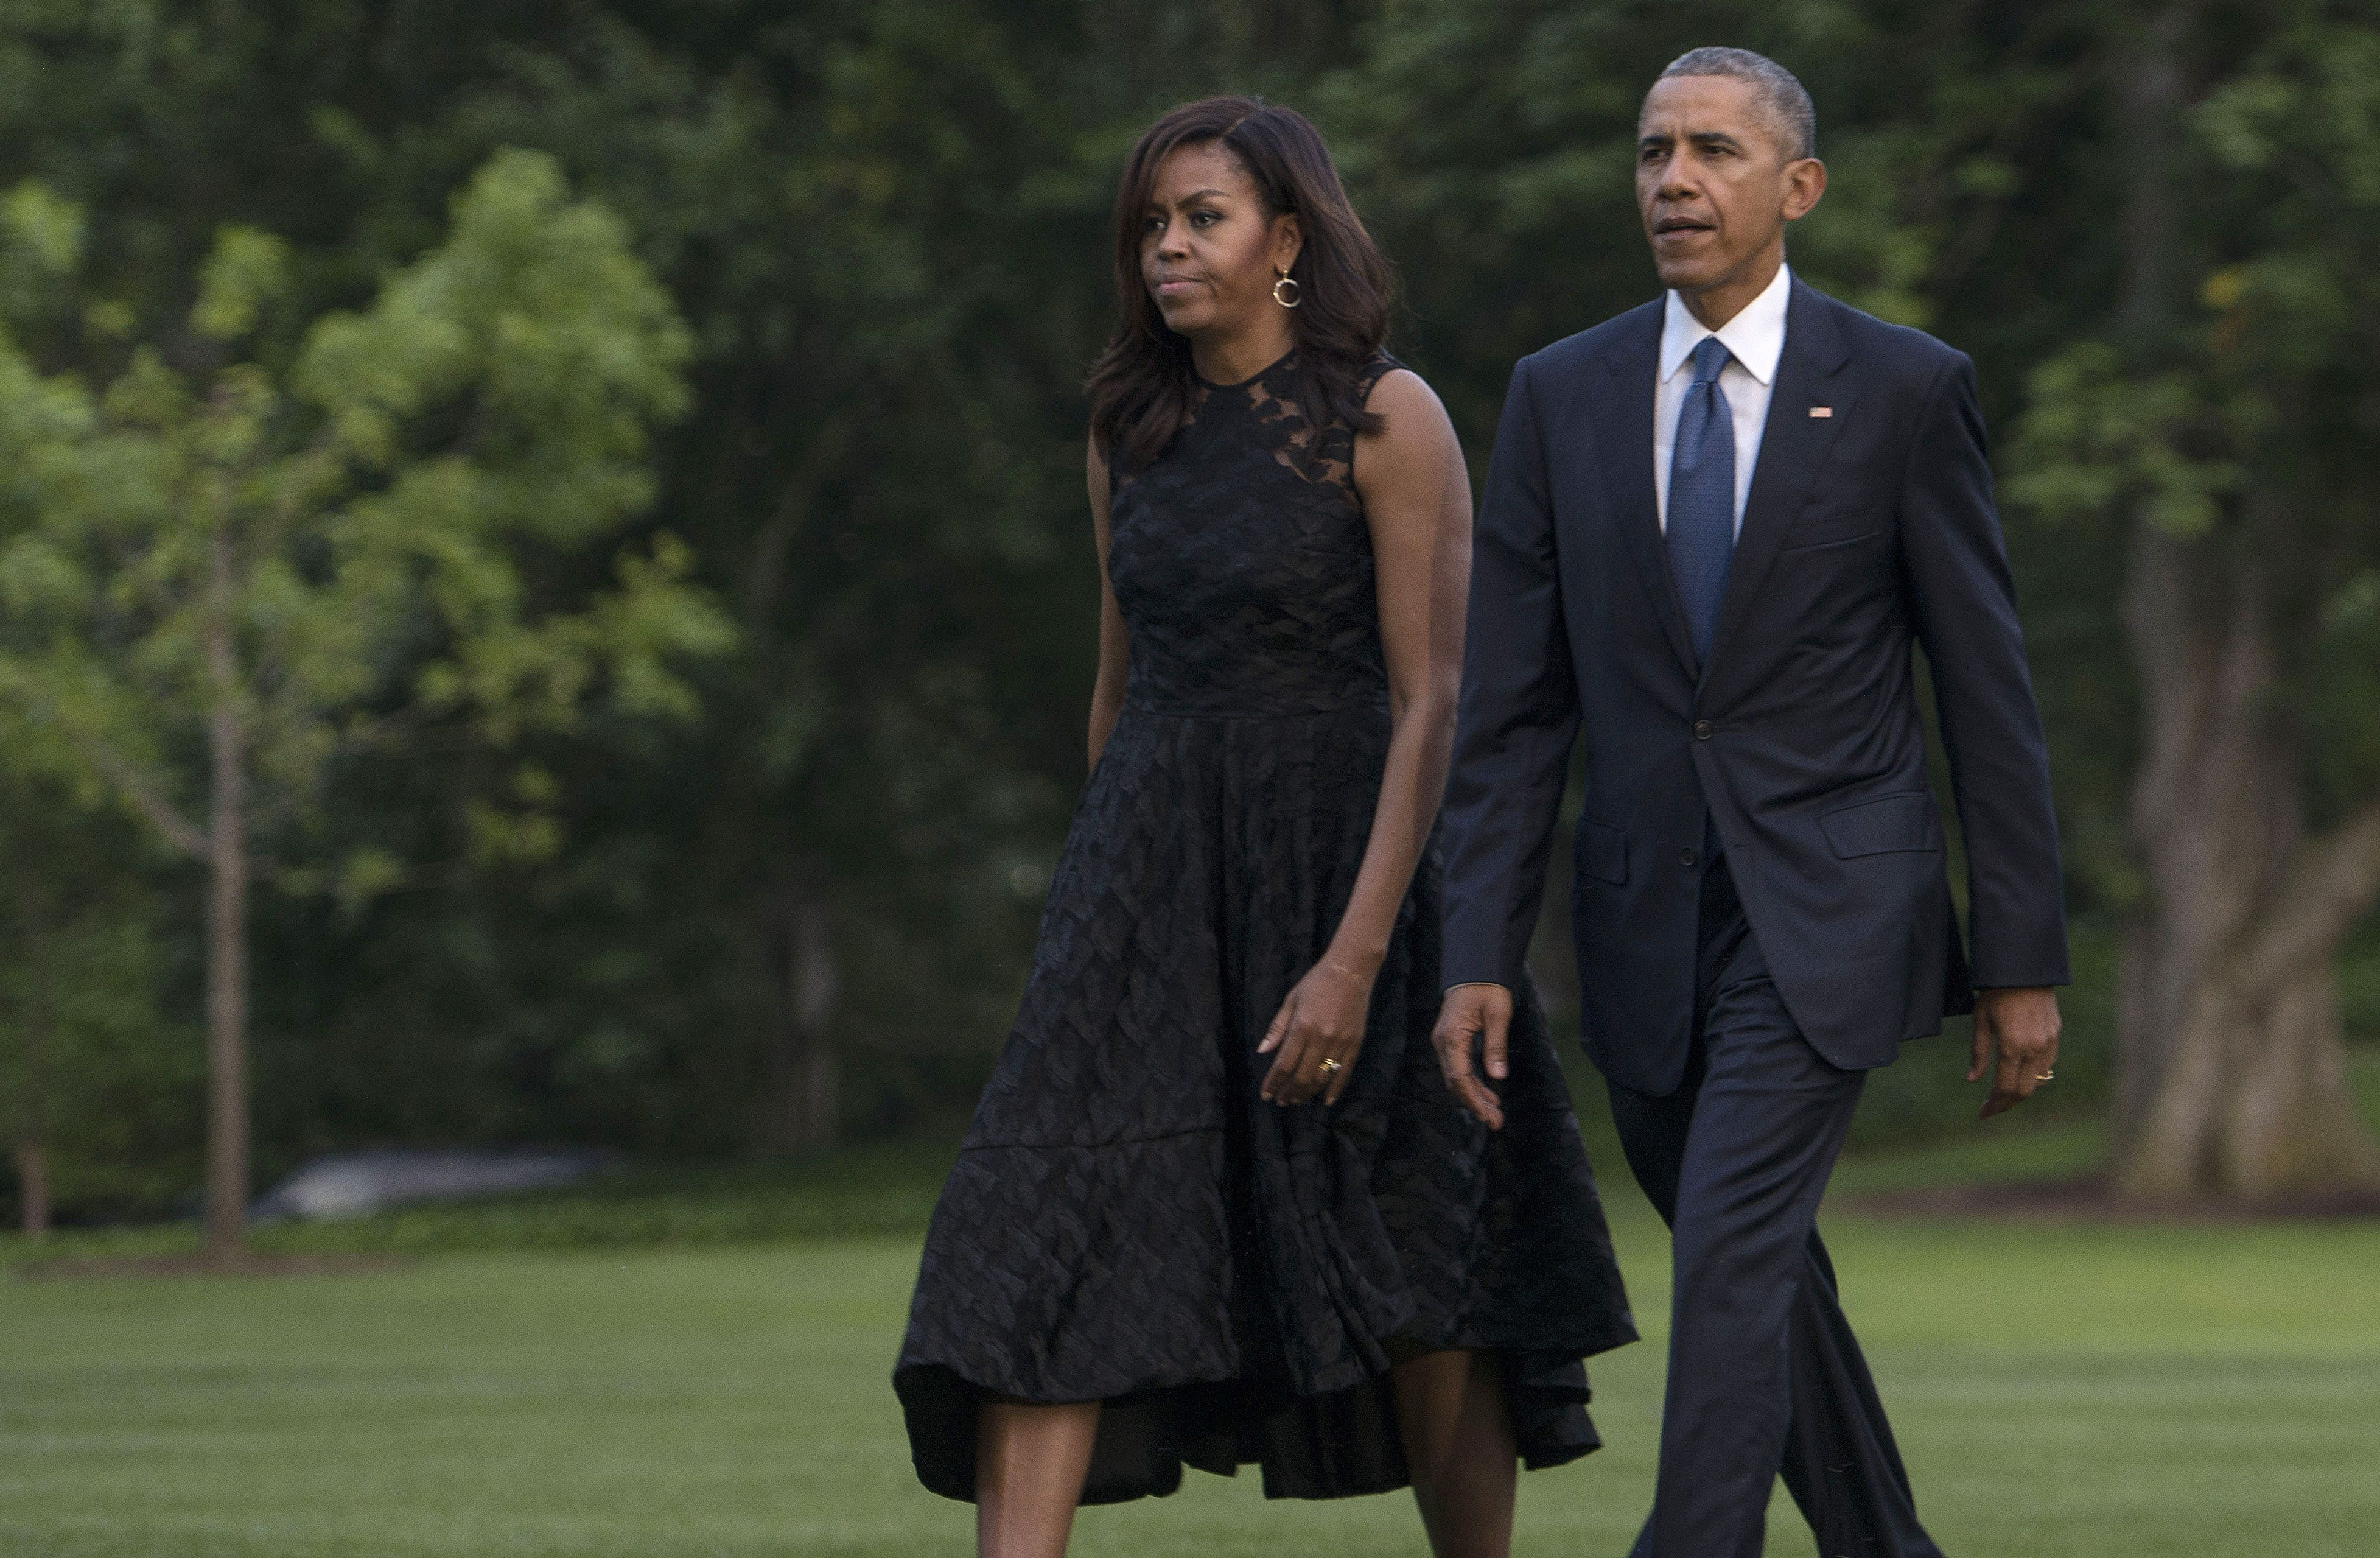 First Lady Michelle Obama and President Barack Obama exit Marine One in July, 2016.